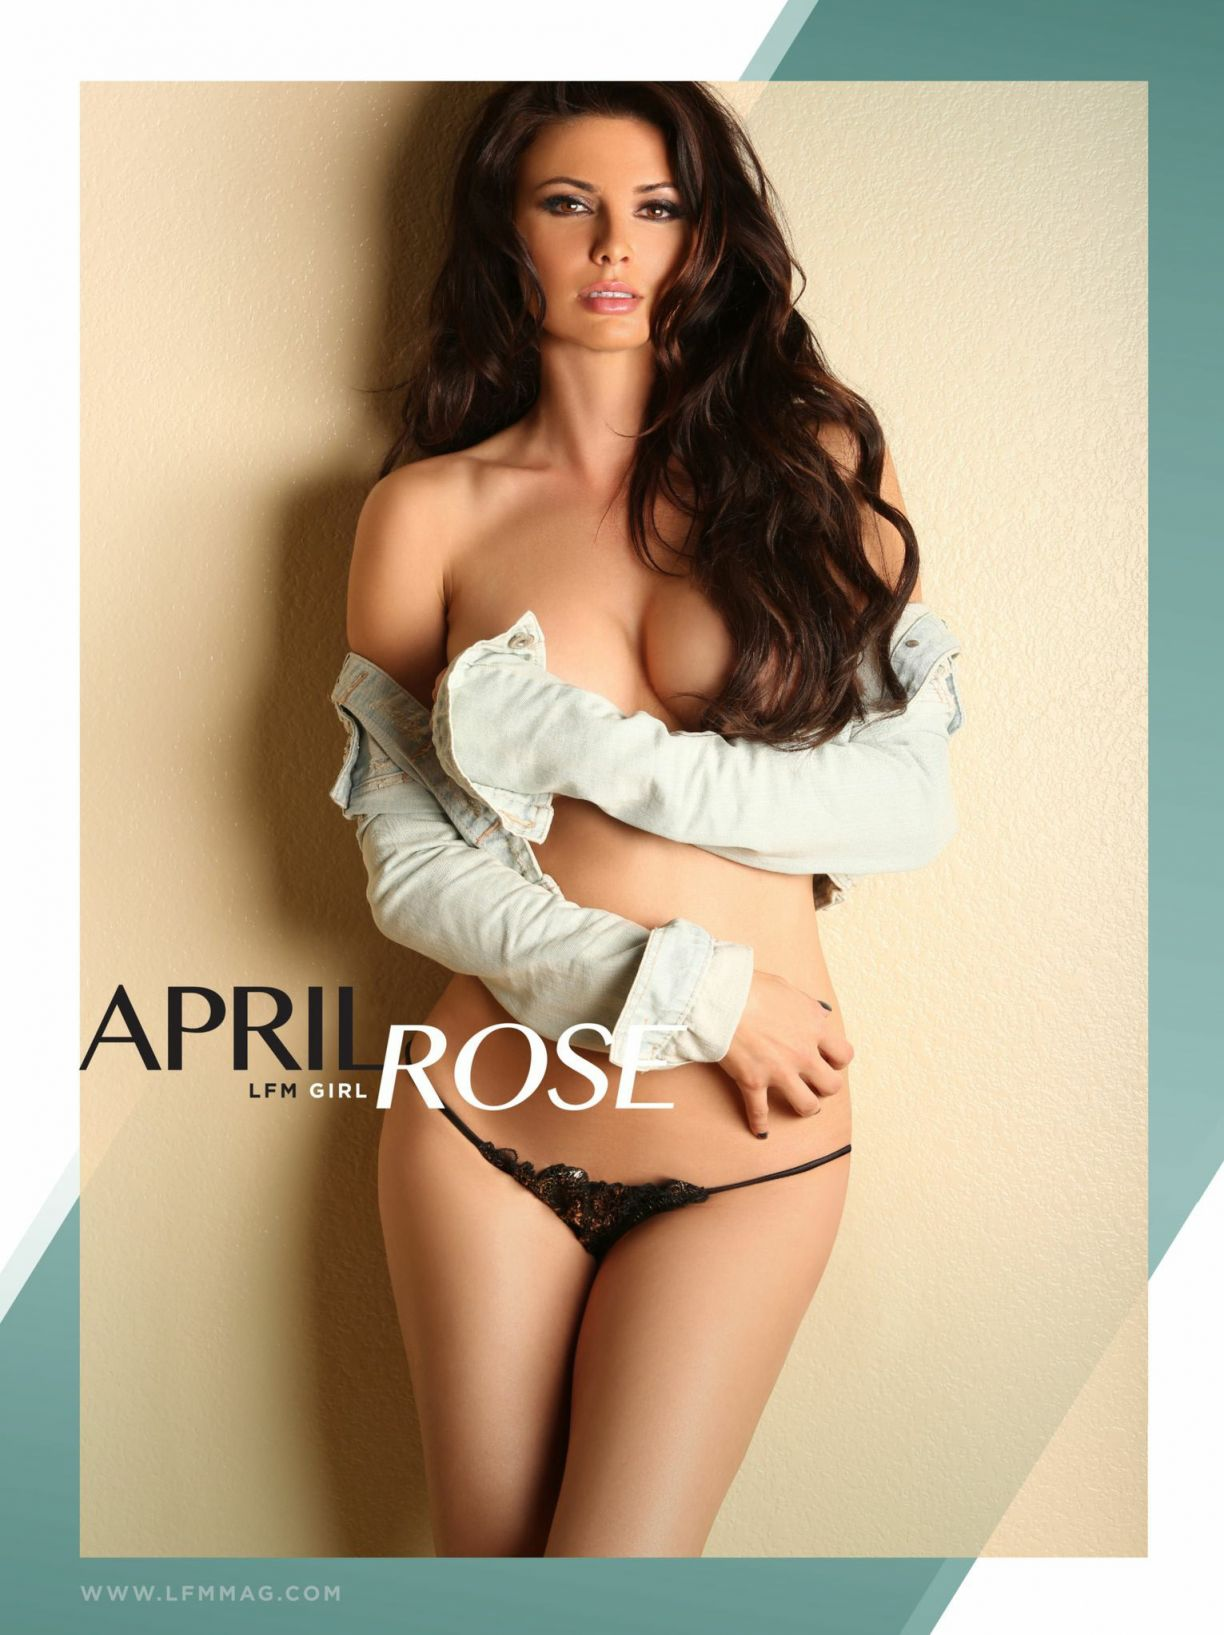 Think, April rose naked sex